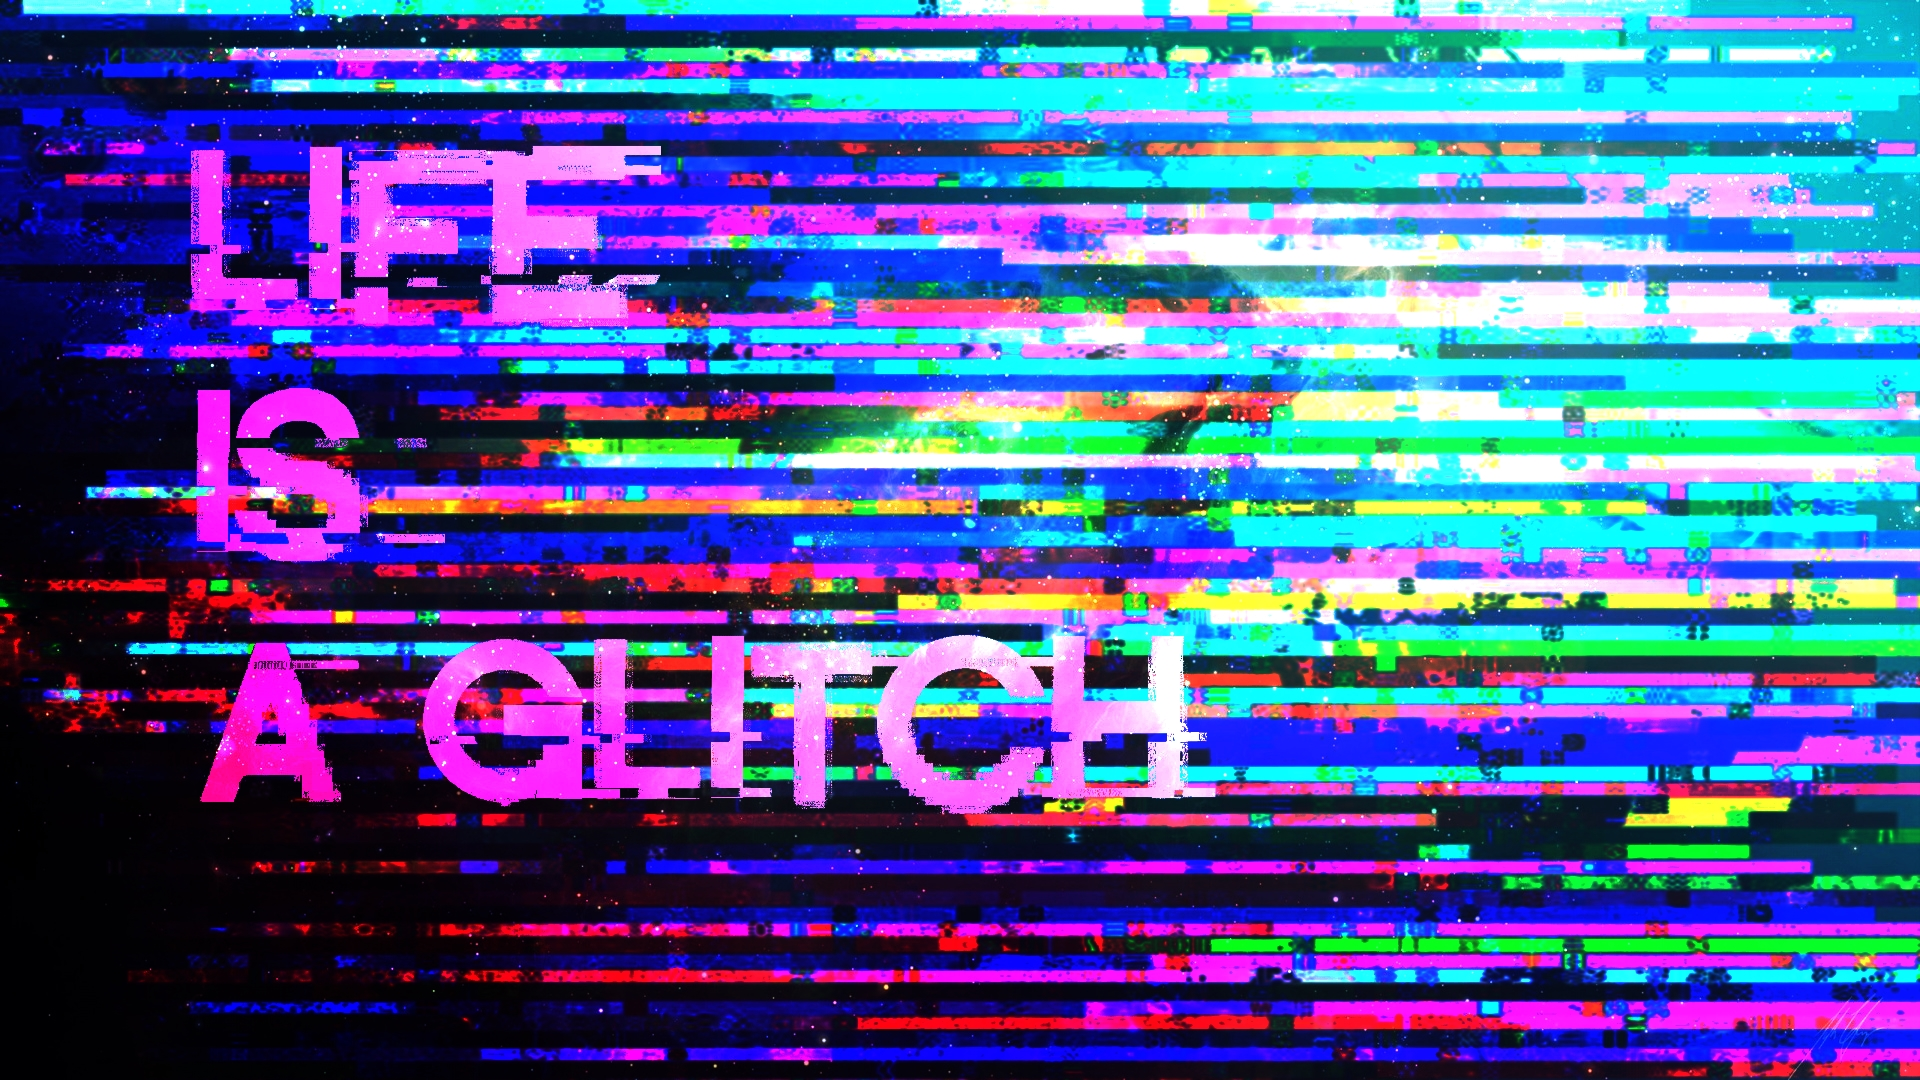 Group of Glitch Art Wallpaper For Youtube